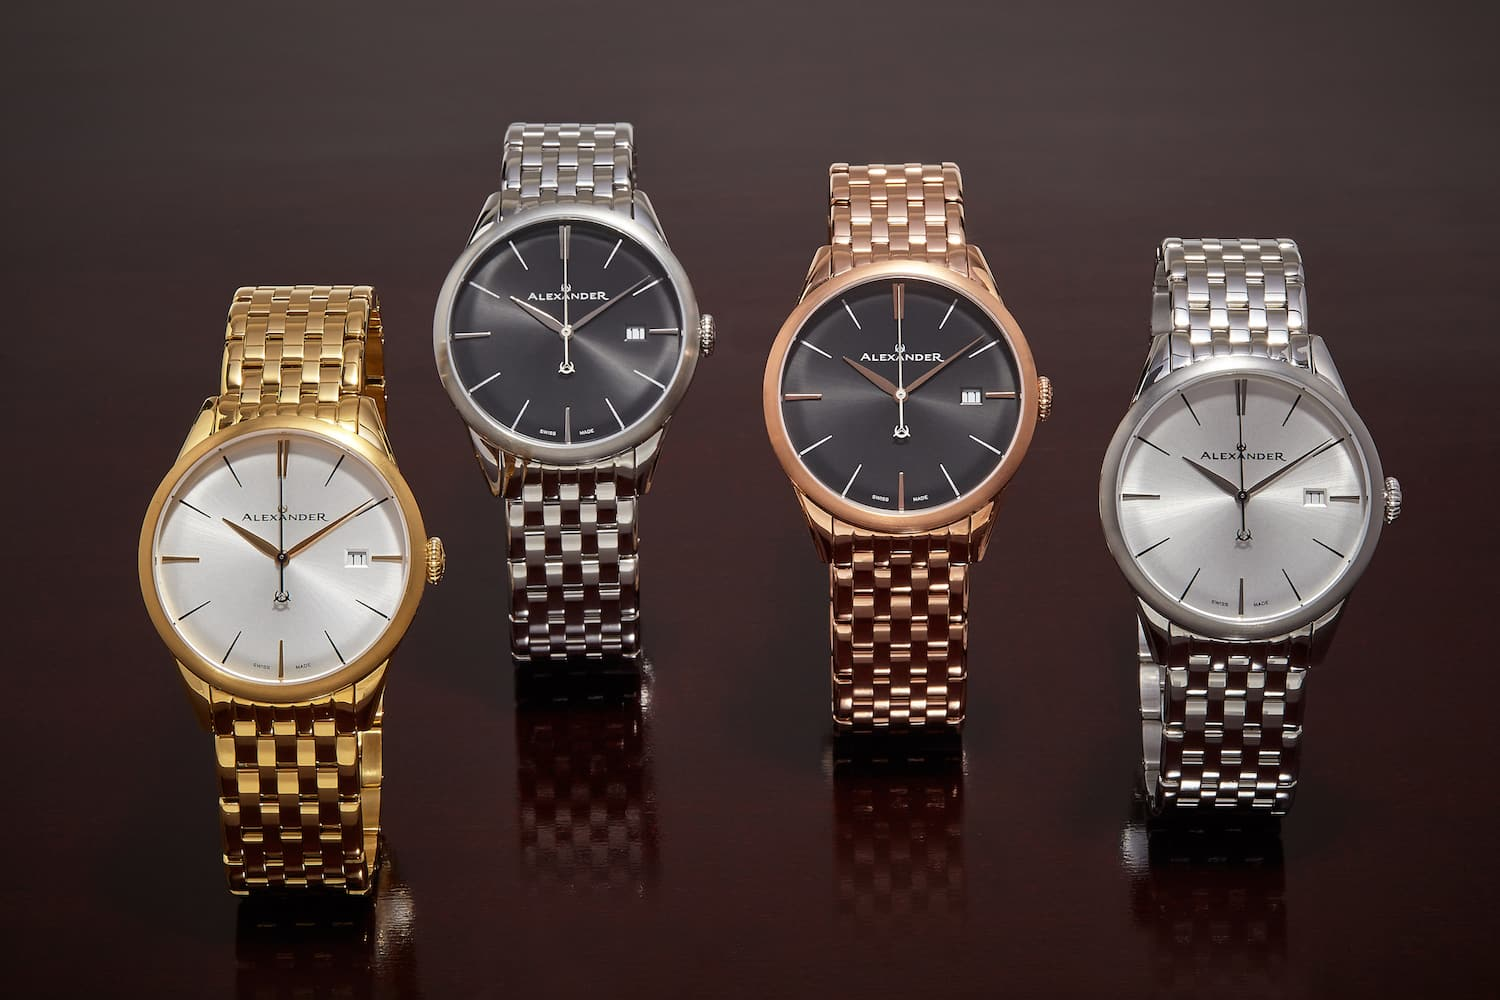 Alexander stainless steel Sophisticate watches for men, 50% off ($385-450)